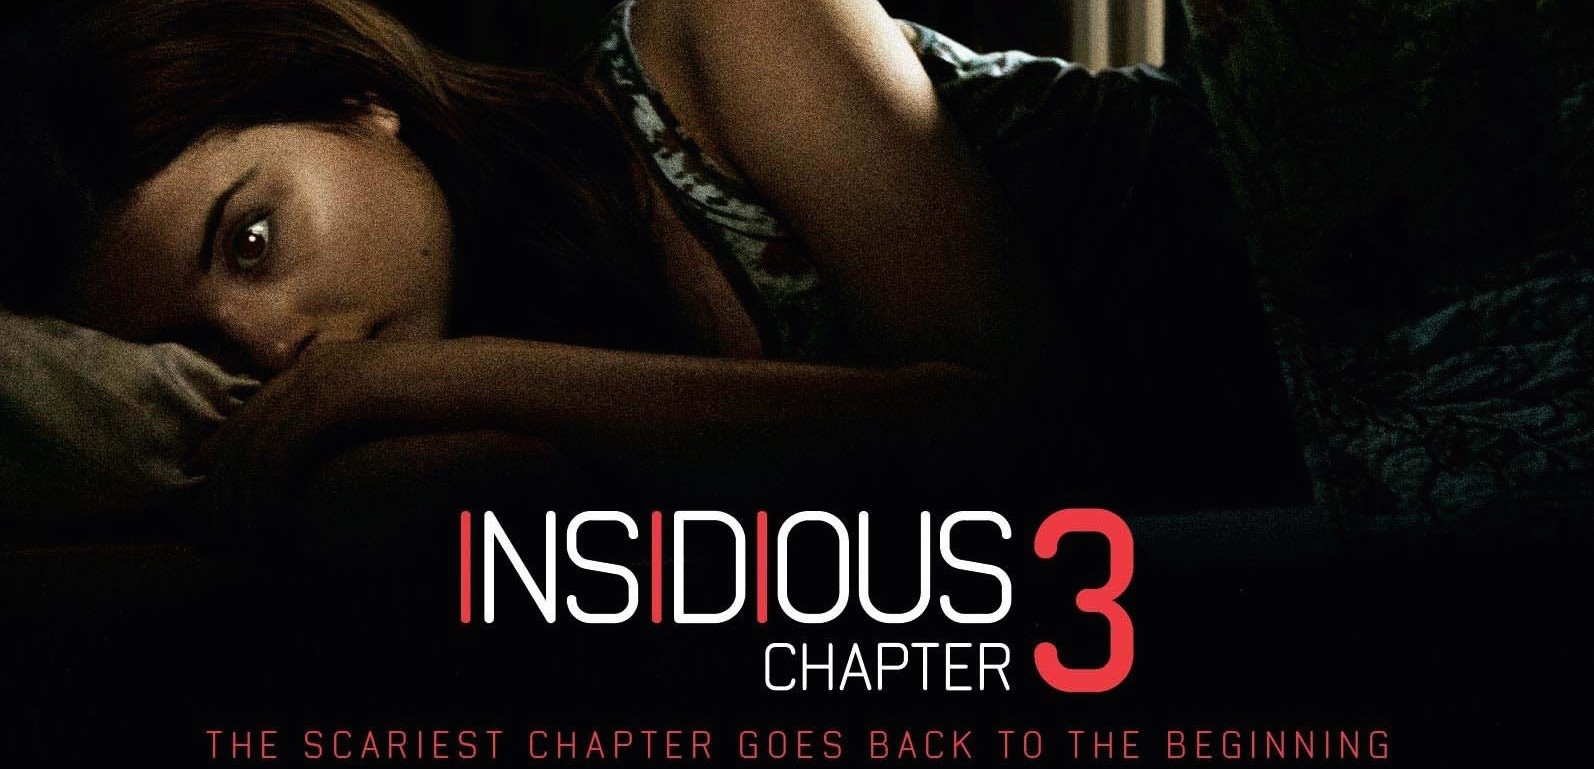 Insidious-Chapter-3-2015-Images